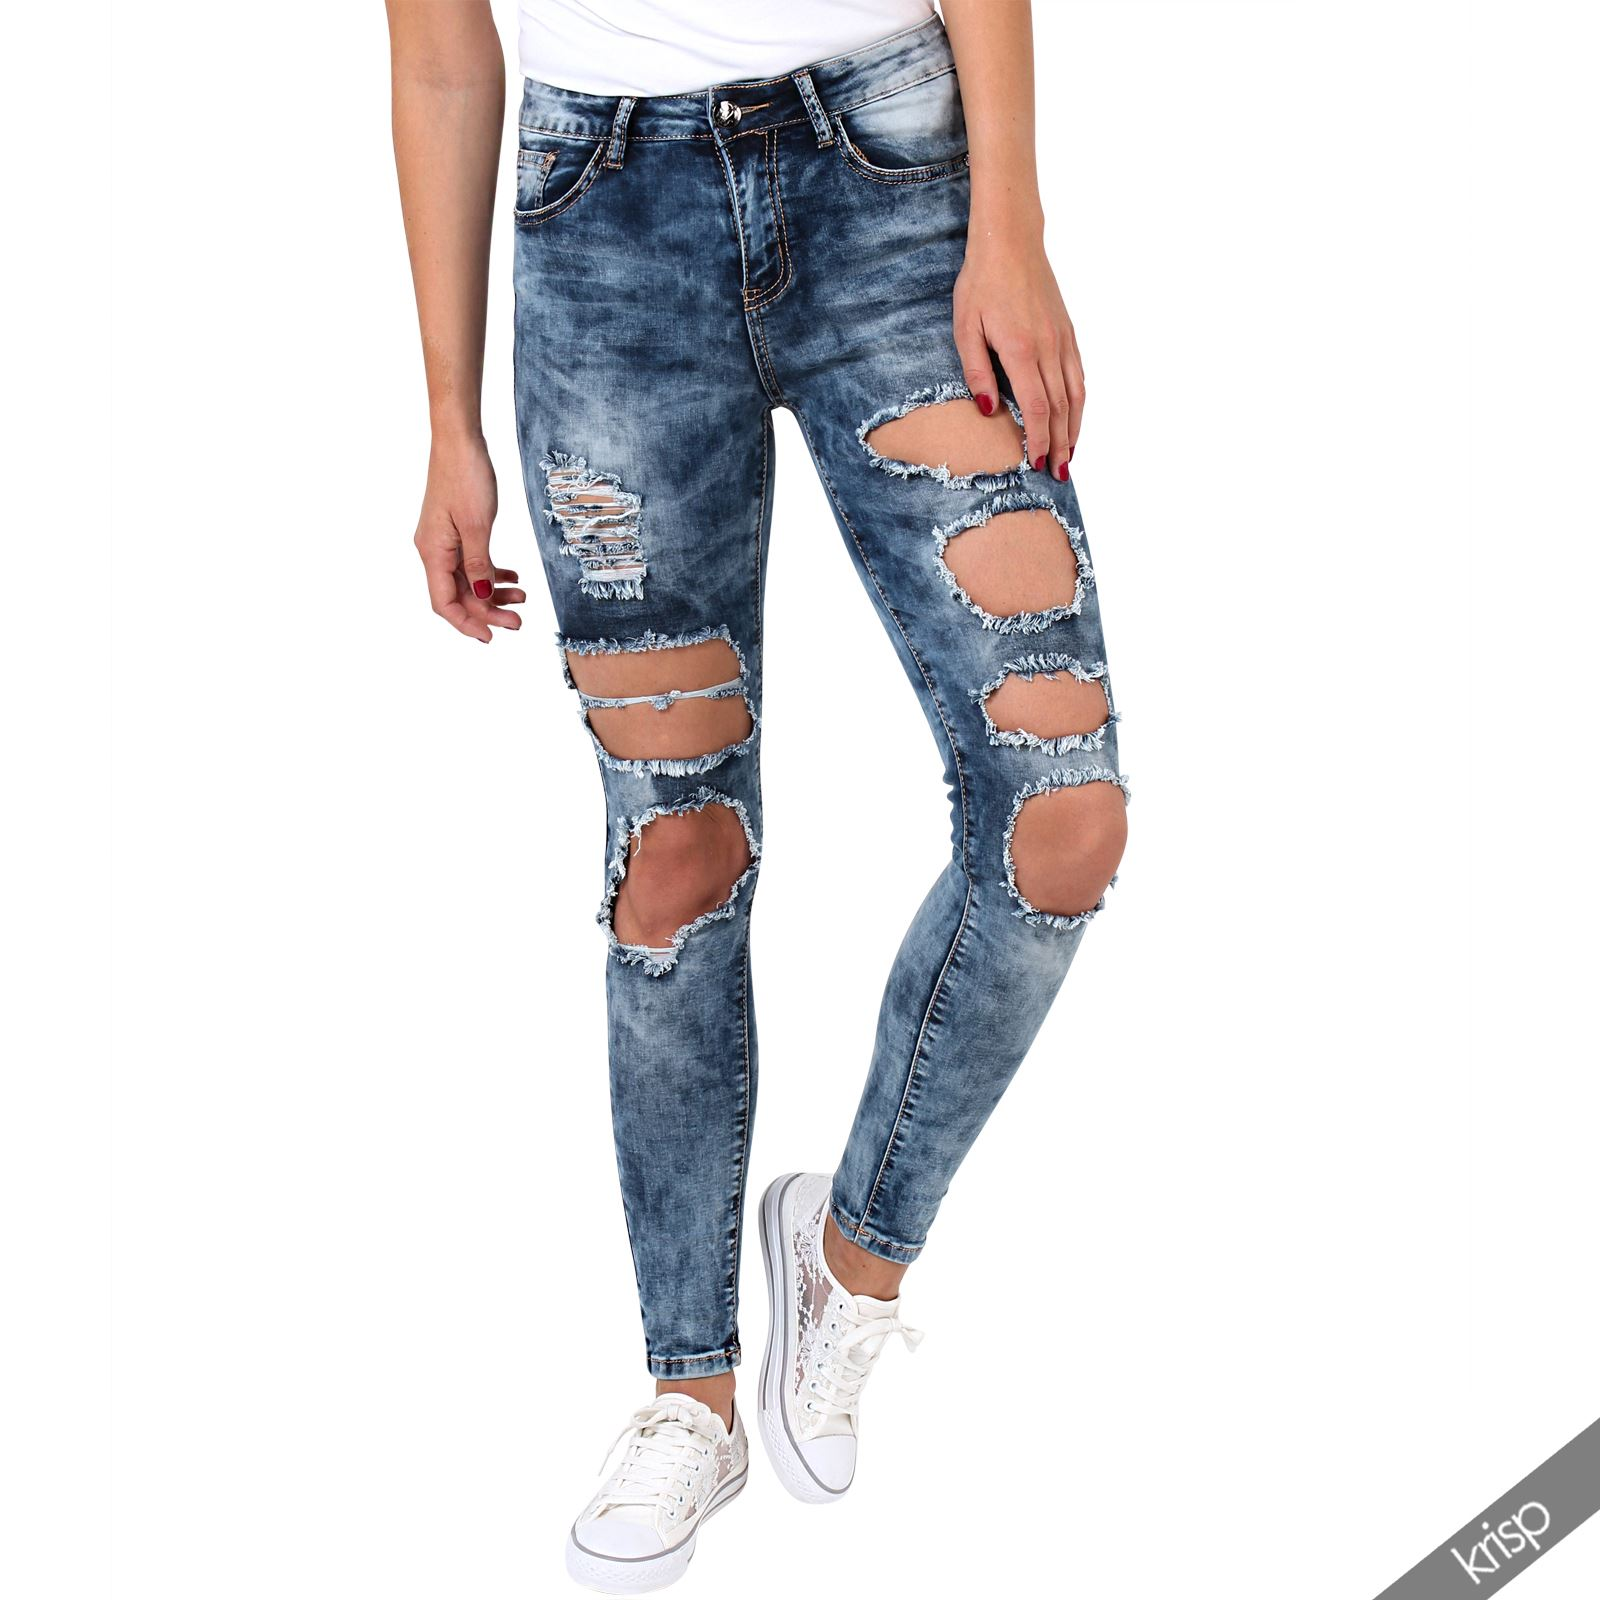 damen aufgerissene retro jeans hoher bund slim fit skinny stretch denim hose ebay. Black Bedroom Furniture Sets. Home Design Ideas